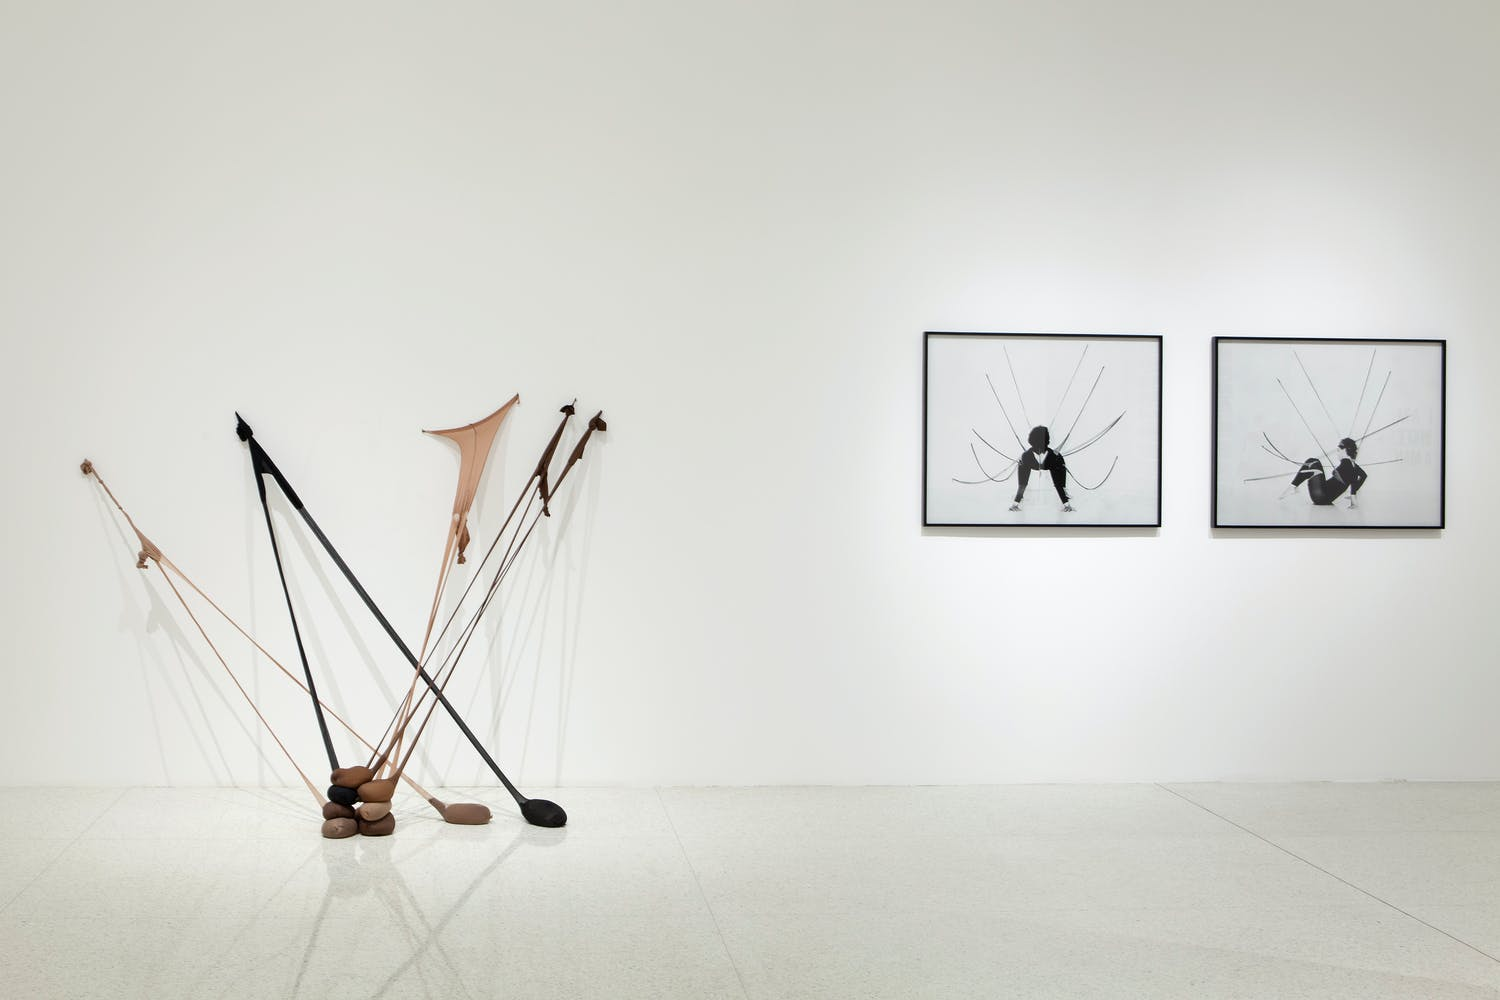 View of the exhibition Radical Presence: Black Performance in Contemporary Art, 2014; (left to right): Senga Nengudi, Untitled (RSVP), 2013; Senga Nengudi, Performance Piece, 1978